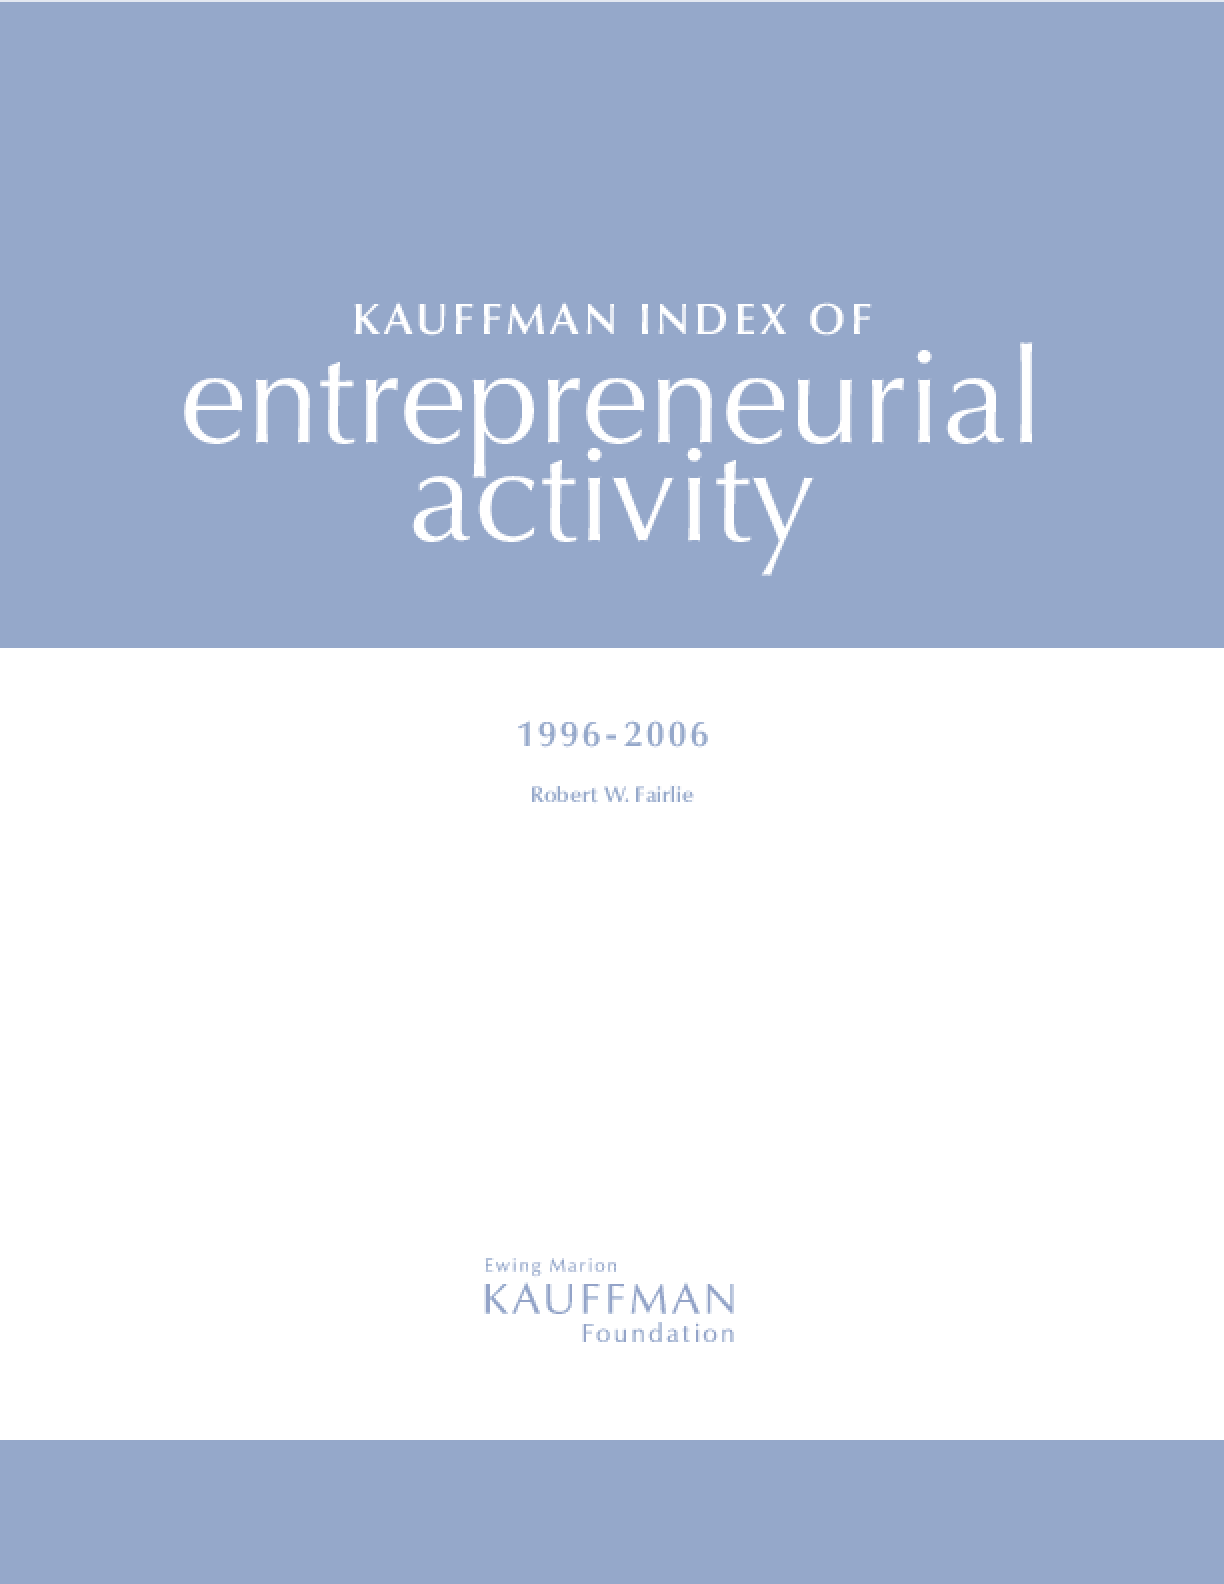 Kauffman Index of Entrepreneurial Activity, 1996-2006